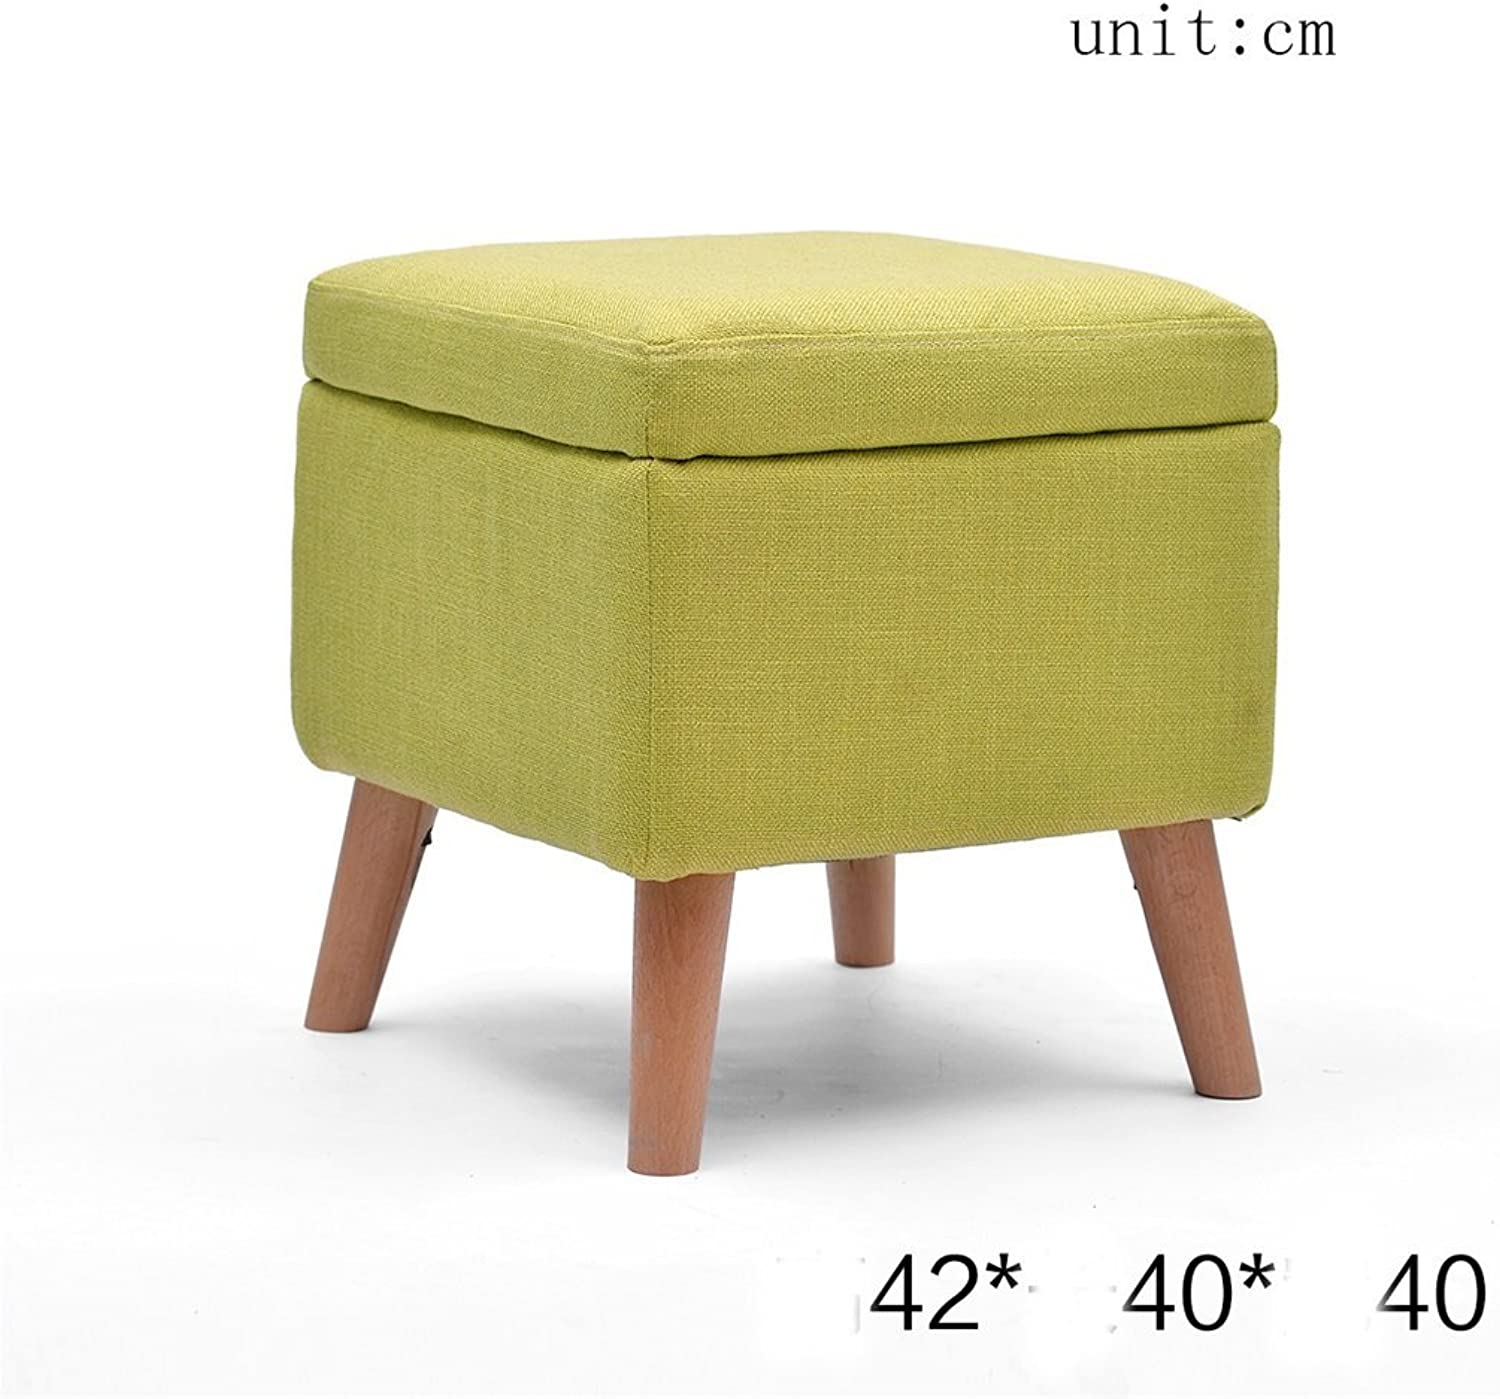 YUHUS HOME Stool Solid wood shoes stool Storage stool stool Sofa stool Coffee table stool Cloth makeup stool Storage stool - small stool (color   C)